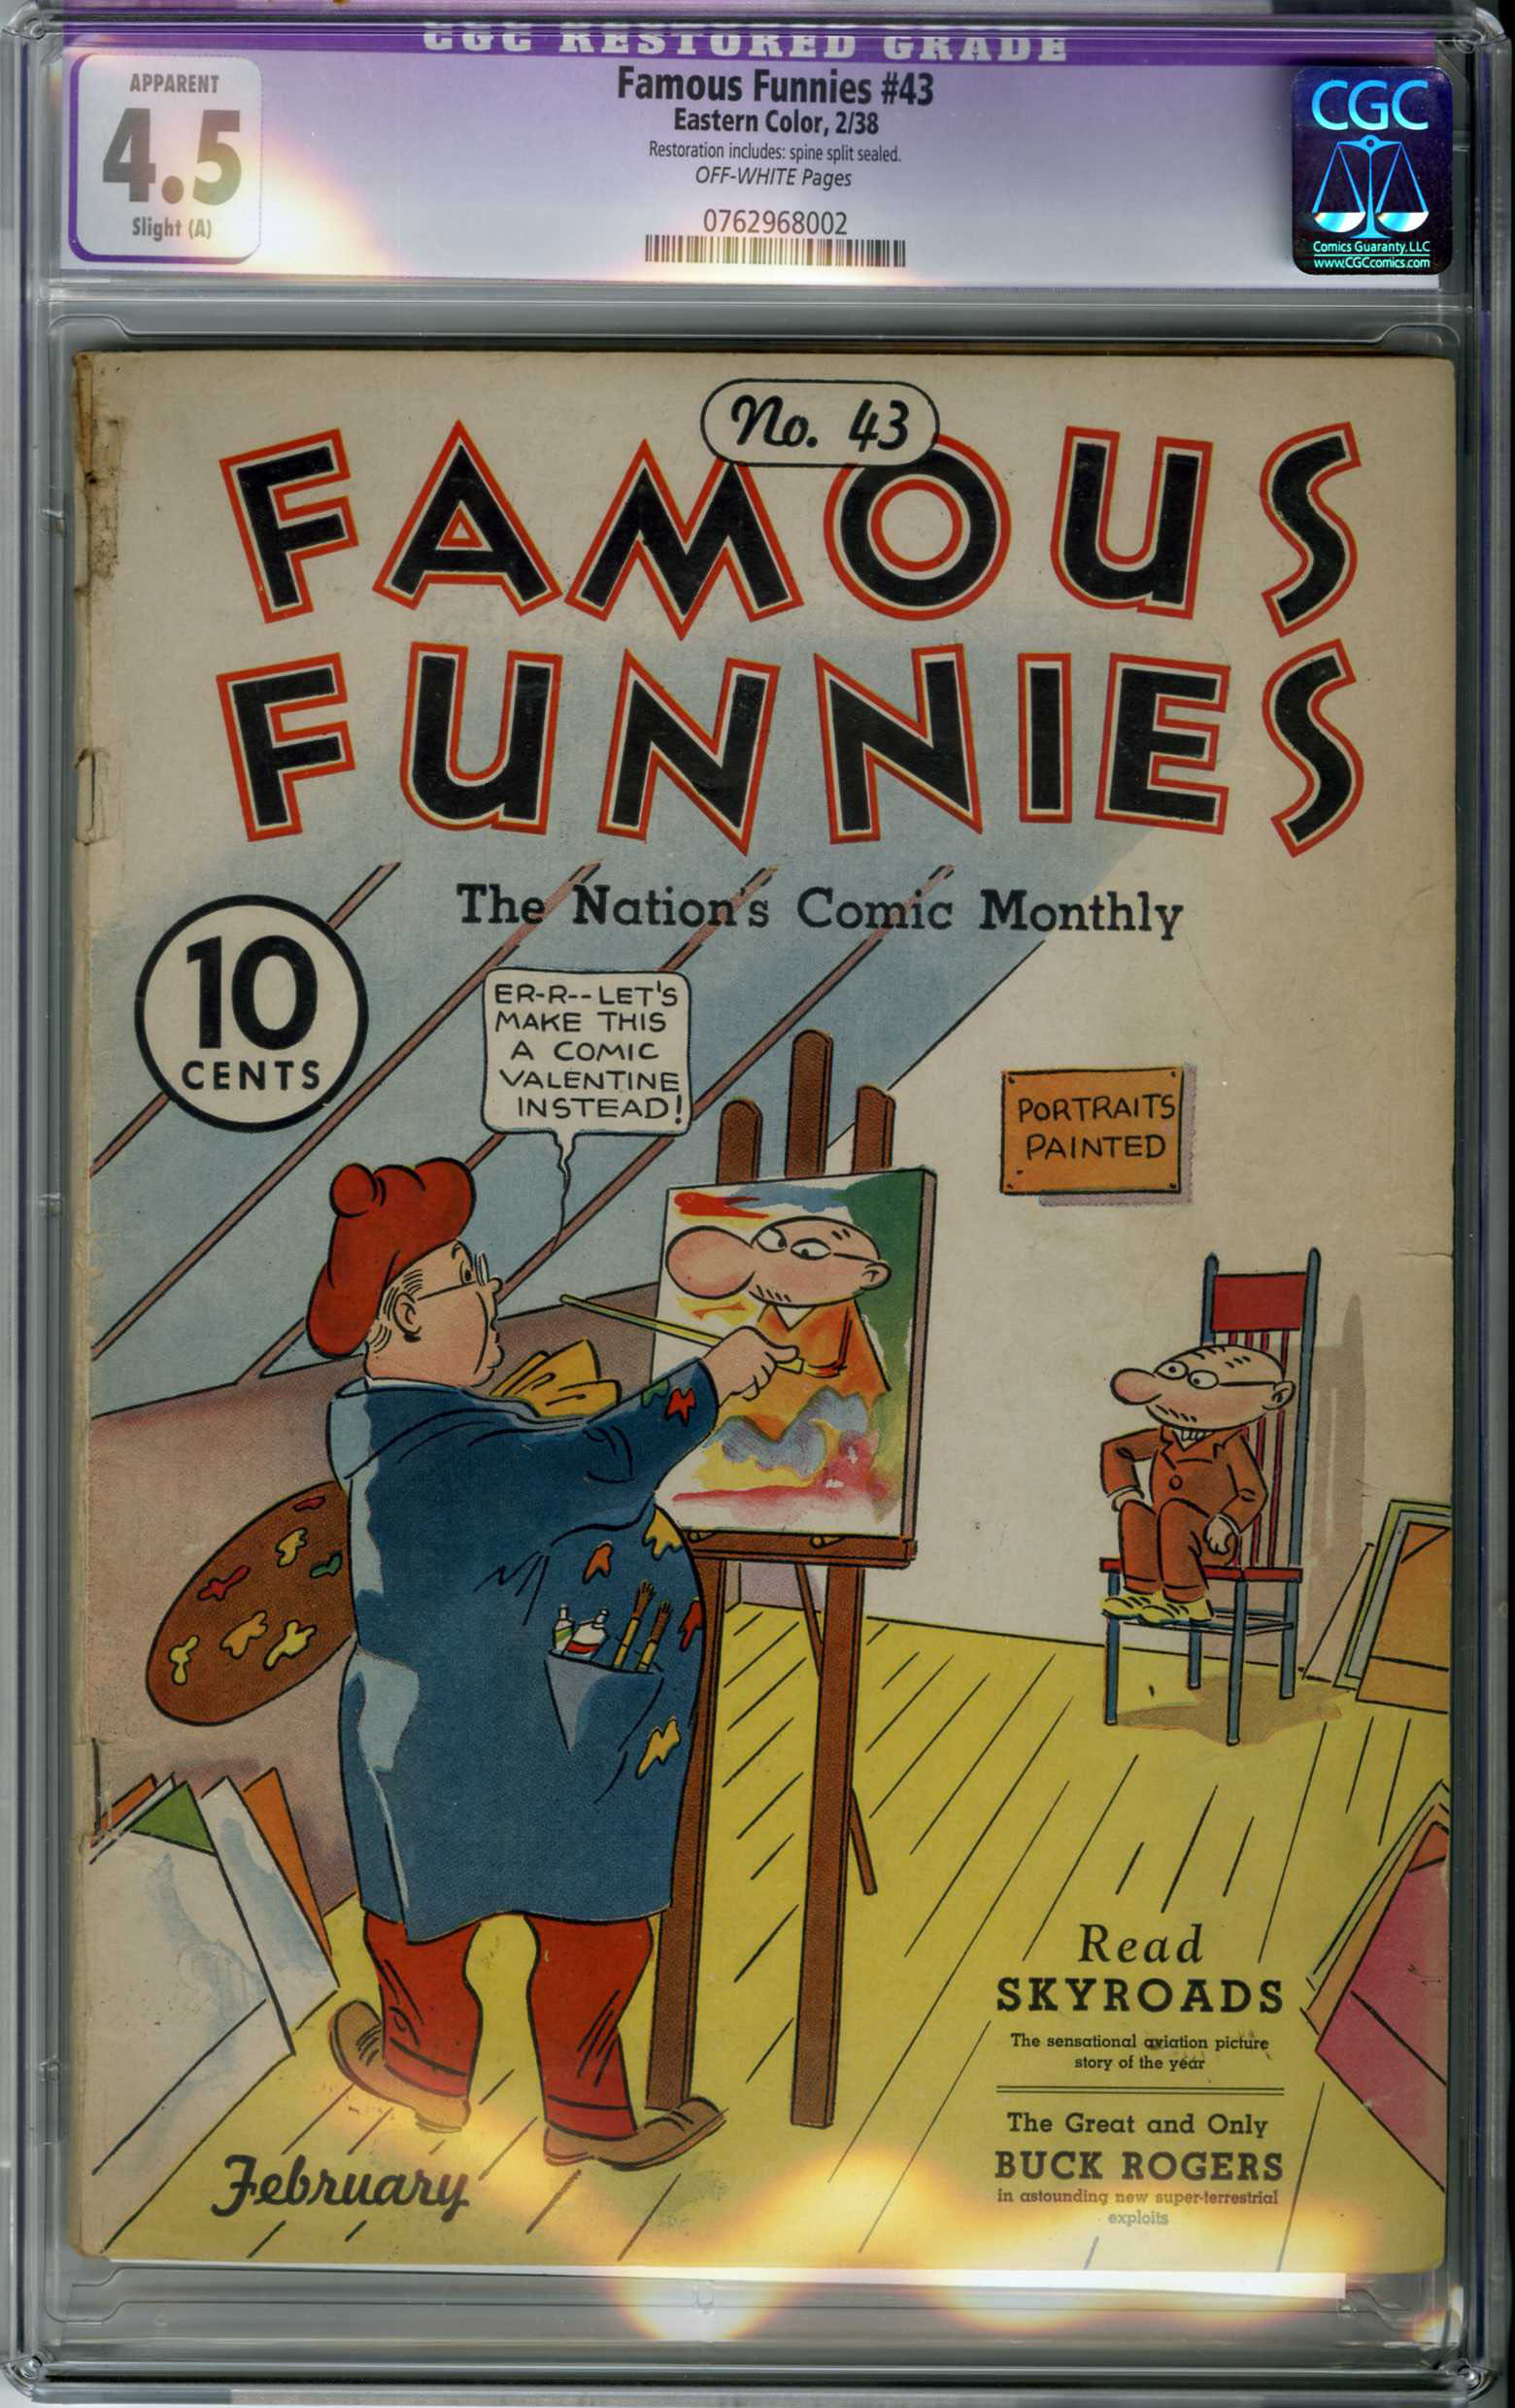 FAMOUS FUNNIES #43 (1938) CGC APPARENT VG+ 4.5 OW Pages / BUCK ROGERS